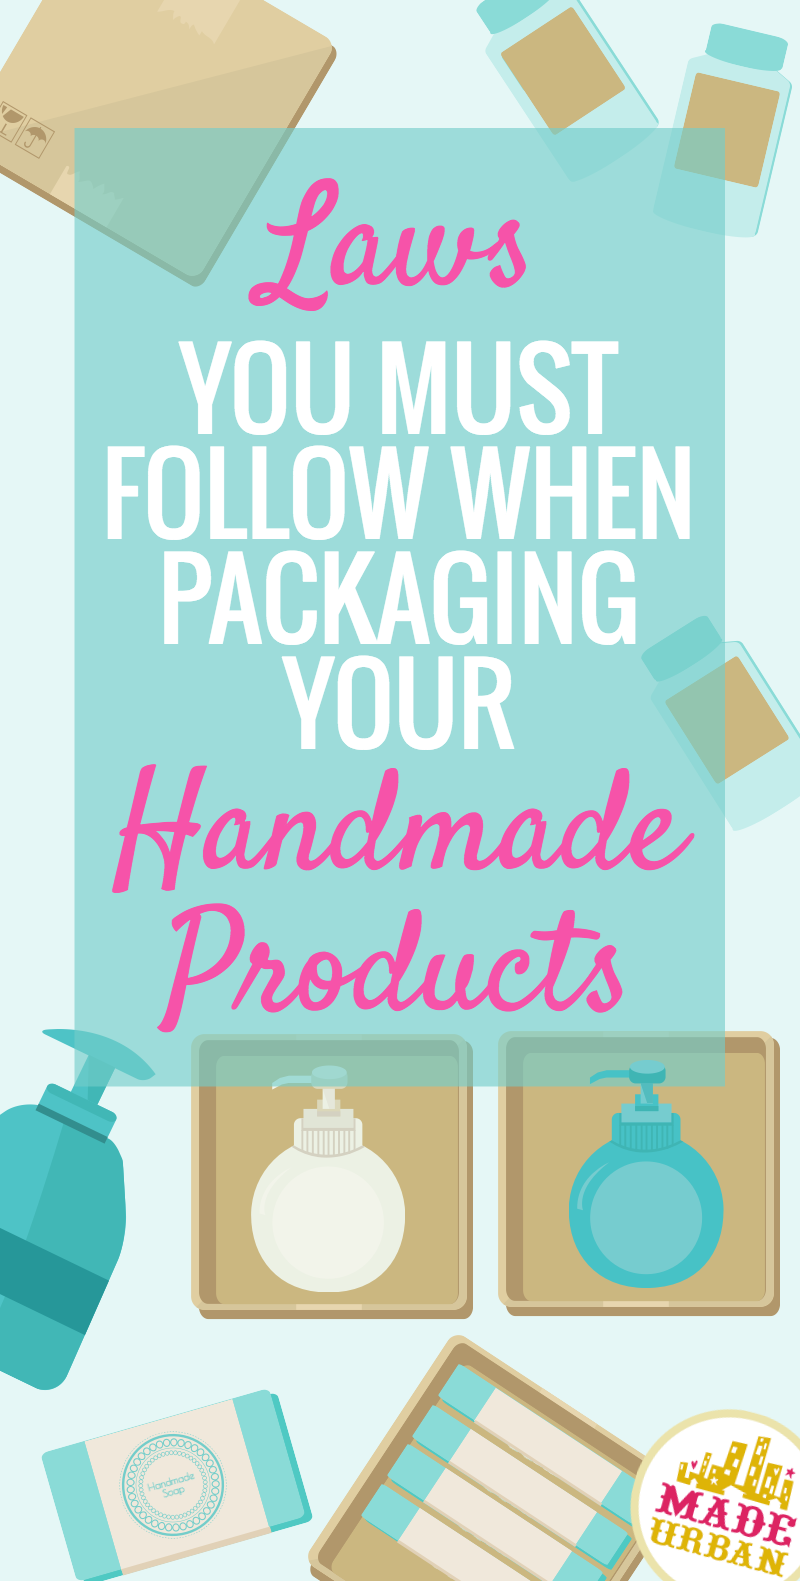 laws you must follow when packaging handmade products names for businesscraft - Graphic Design Business Name Ideas